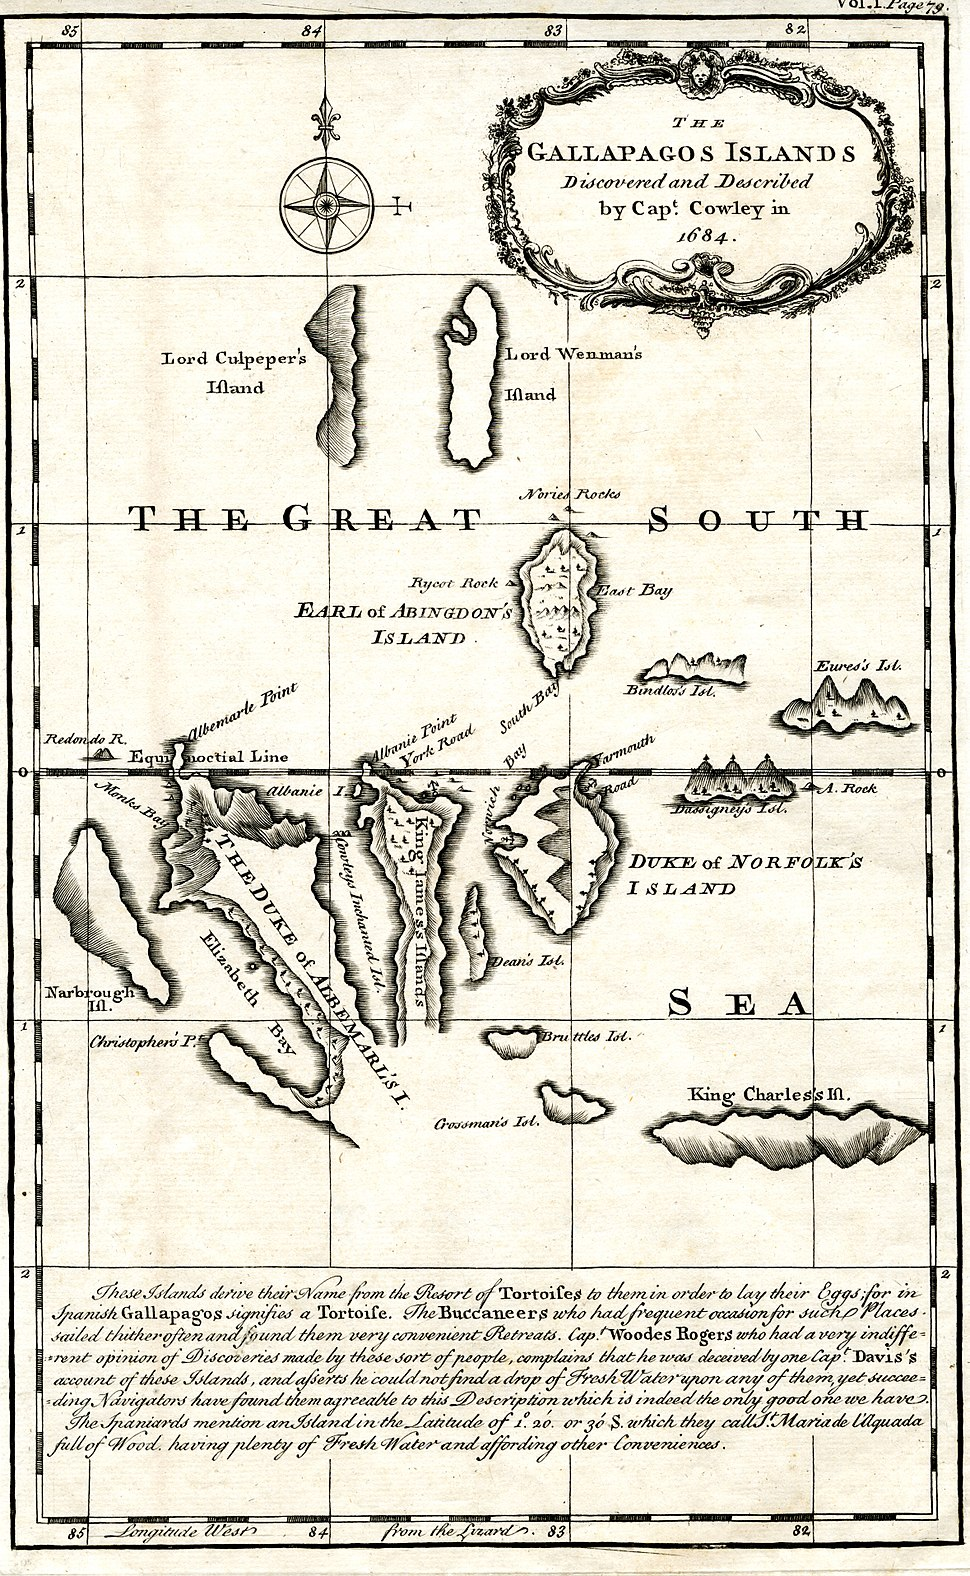 Gallapagos Islands 1684